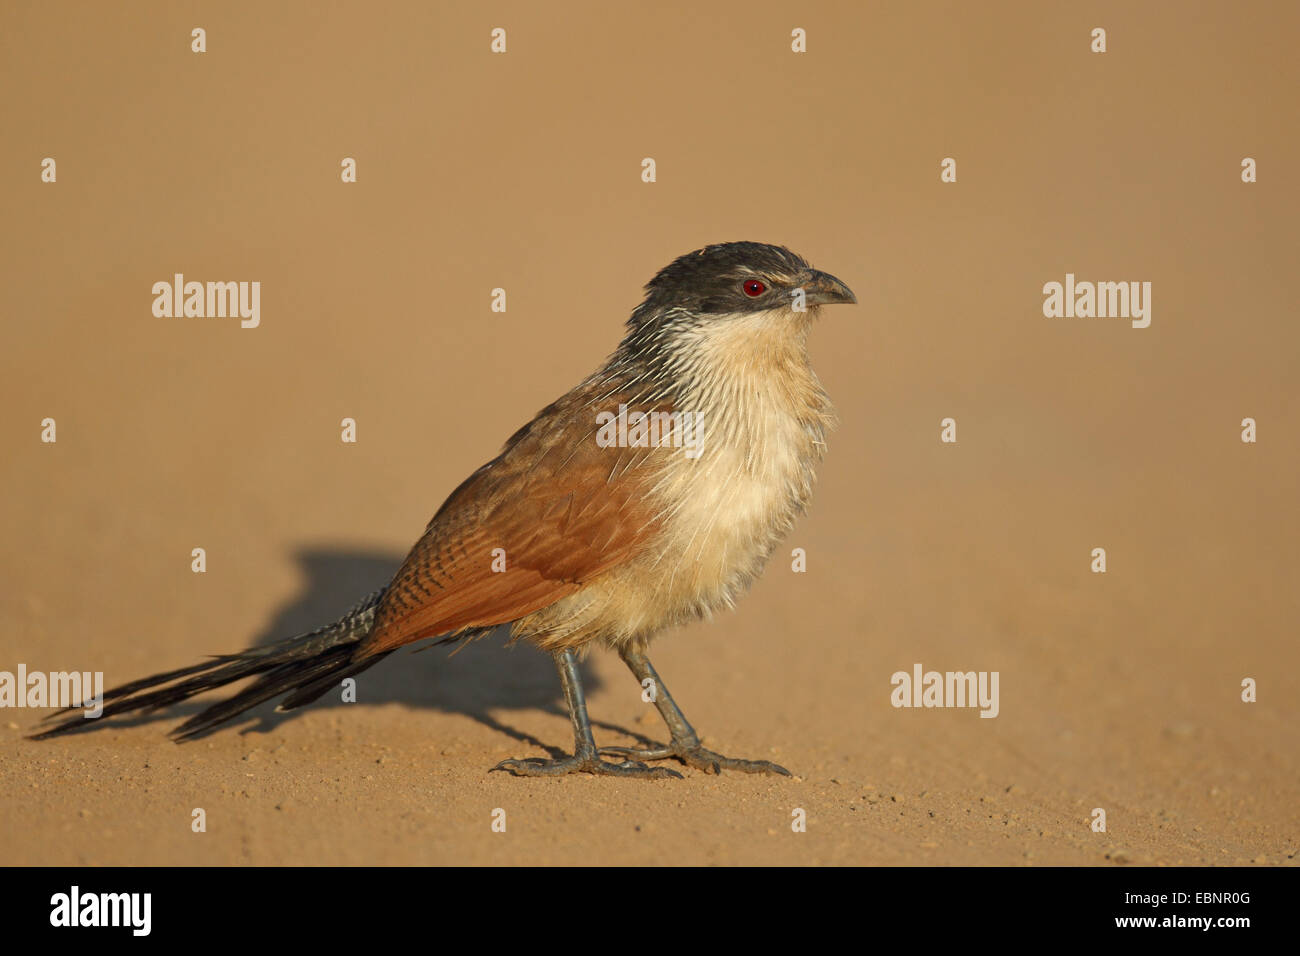 Burchell's coucal (Centropus burchellii), stands on the ground, South Africa, Pilanesberg National Park - Stock Image